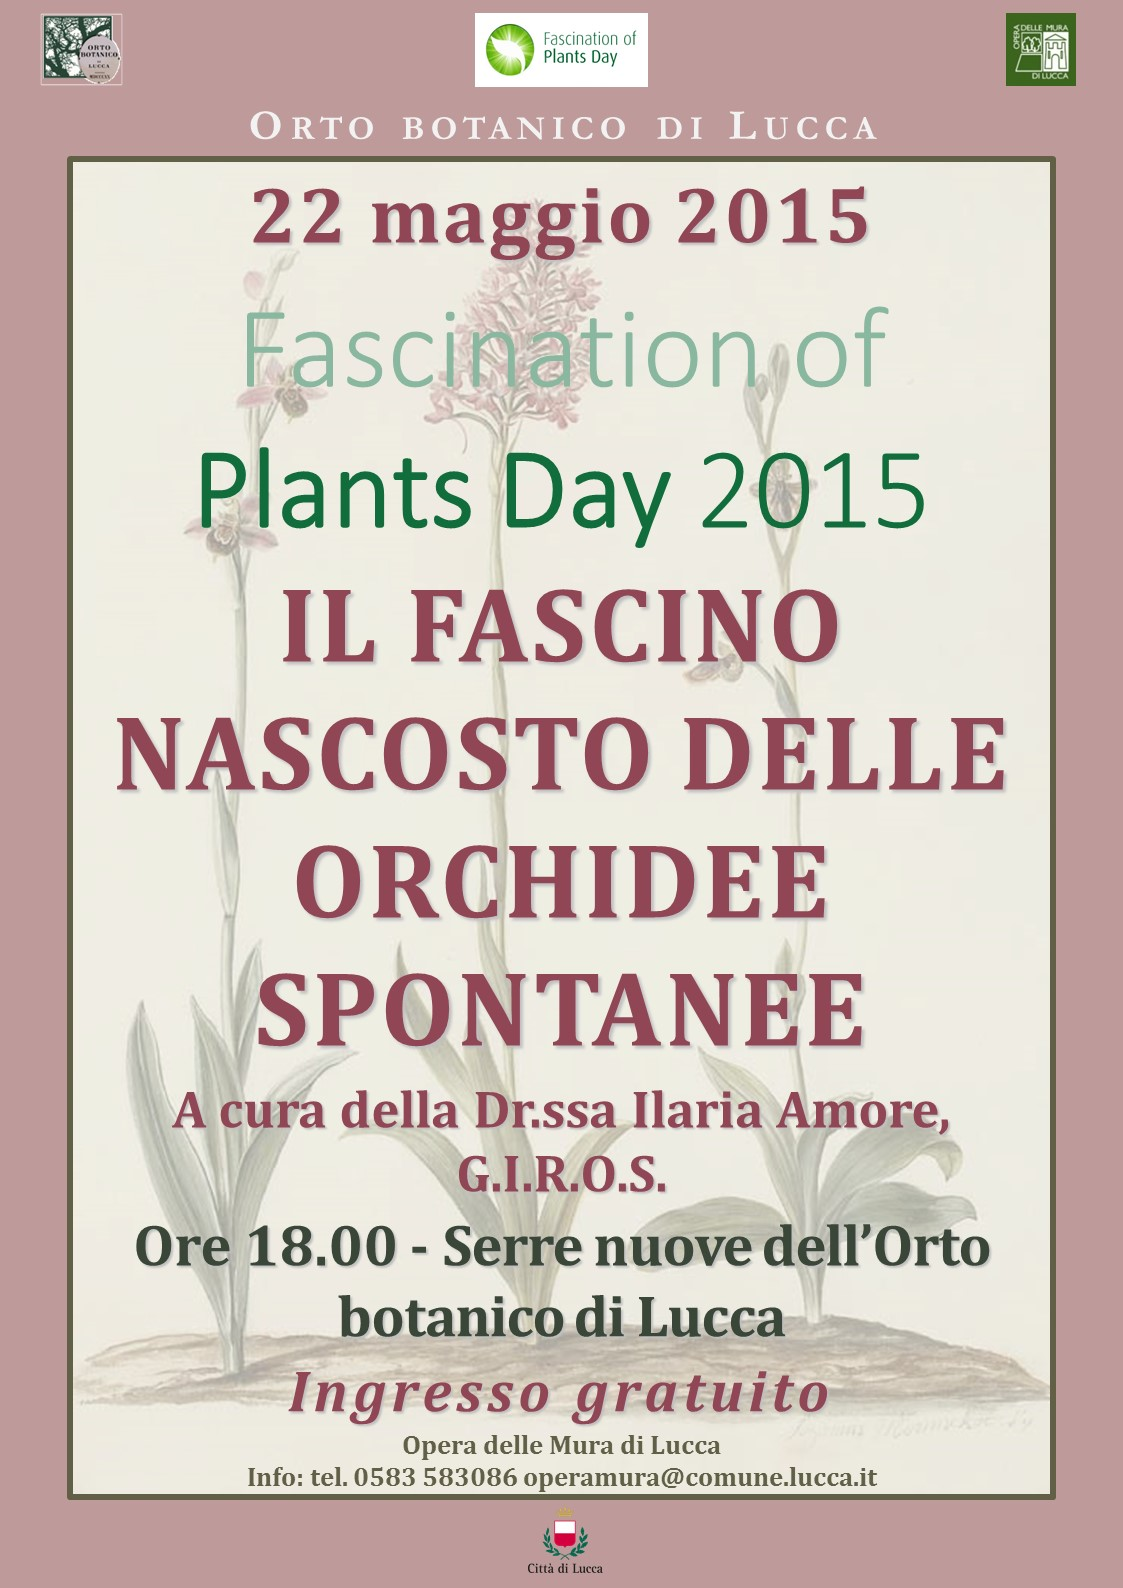 fasc_plant_day_HB_Lucca_15